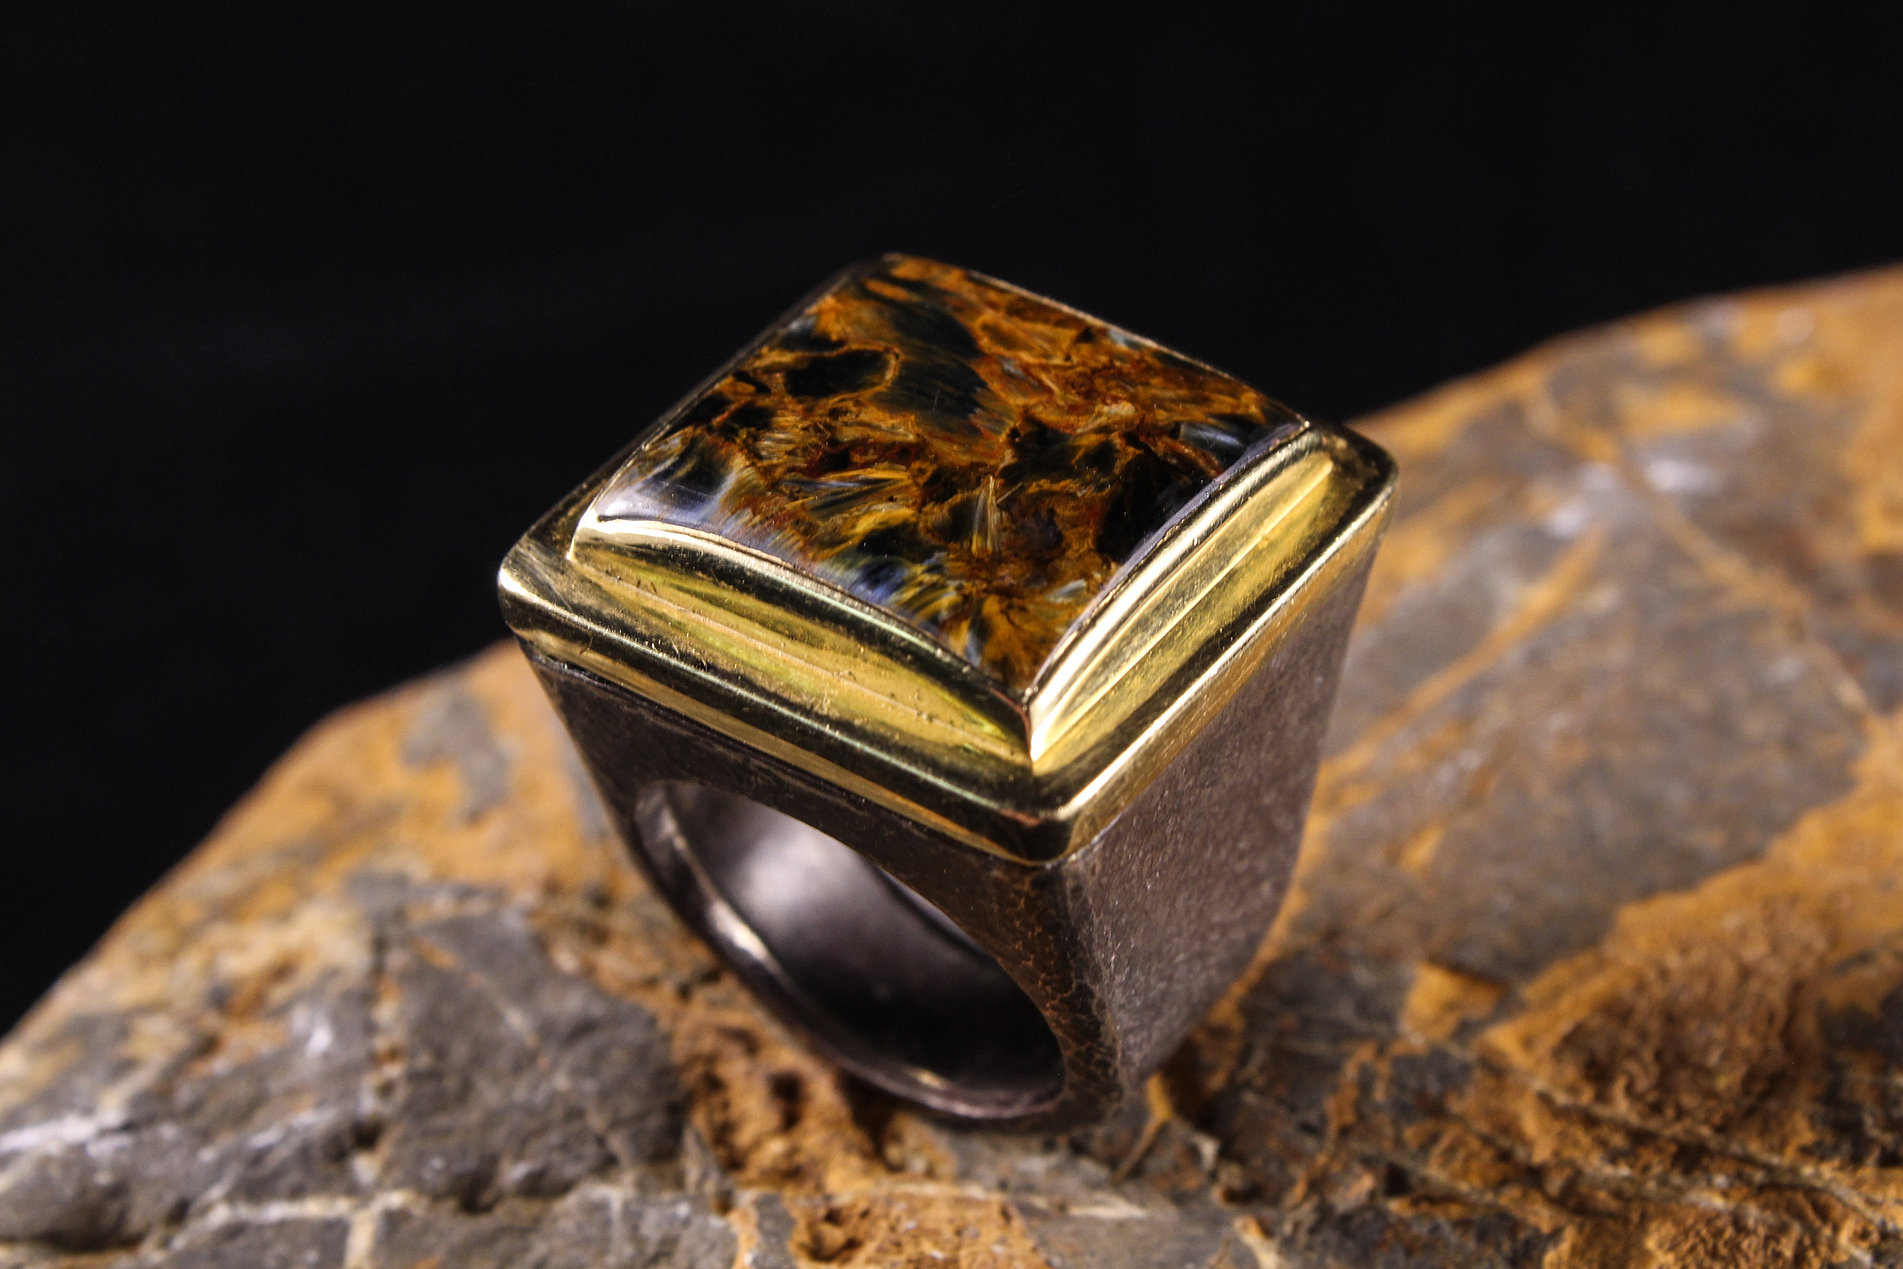 stone benefits to rings modernist gallery and tigers meaning tiger from eye time of ring its